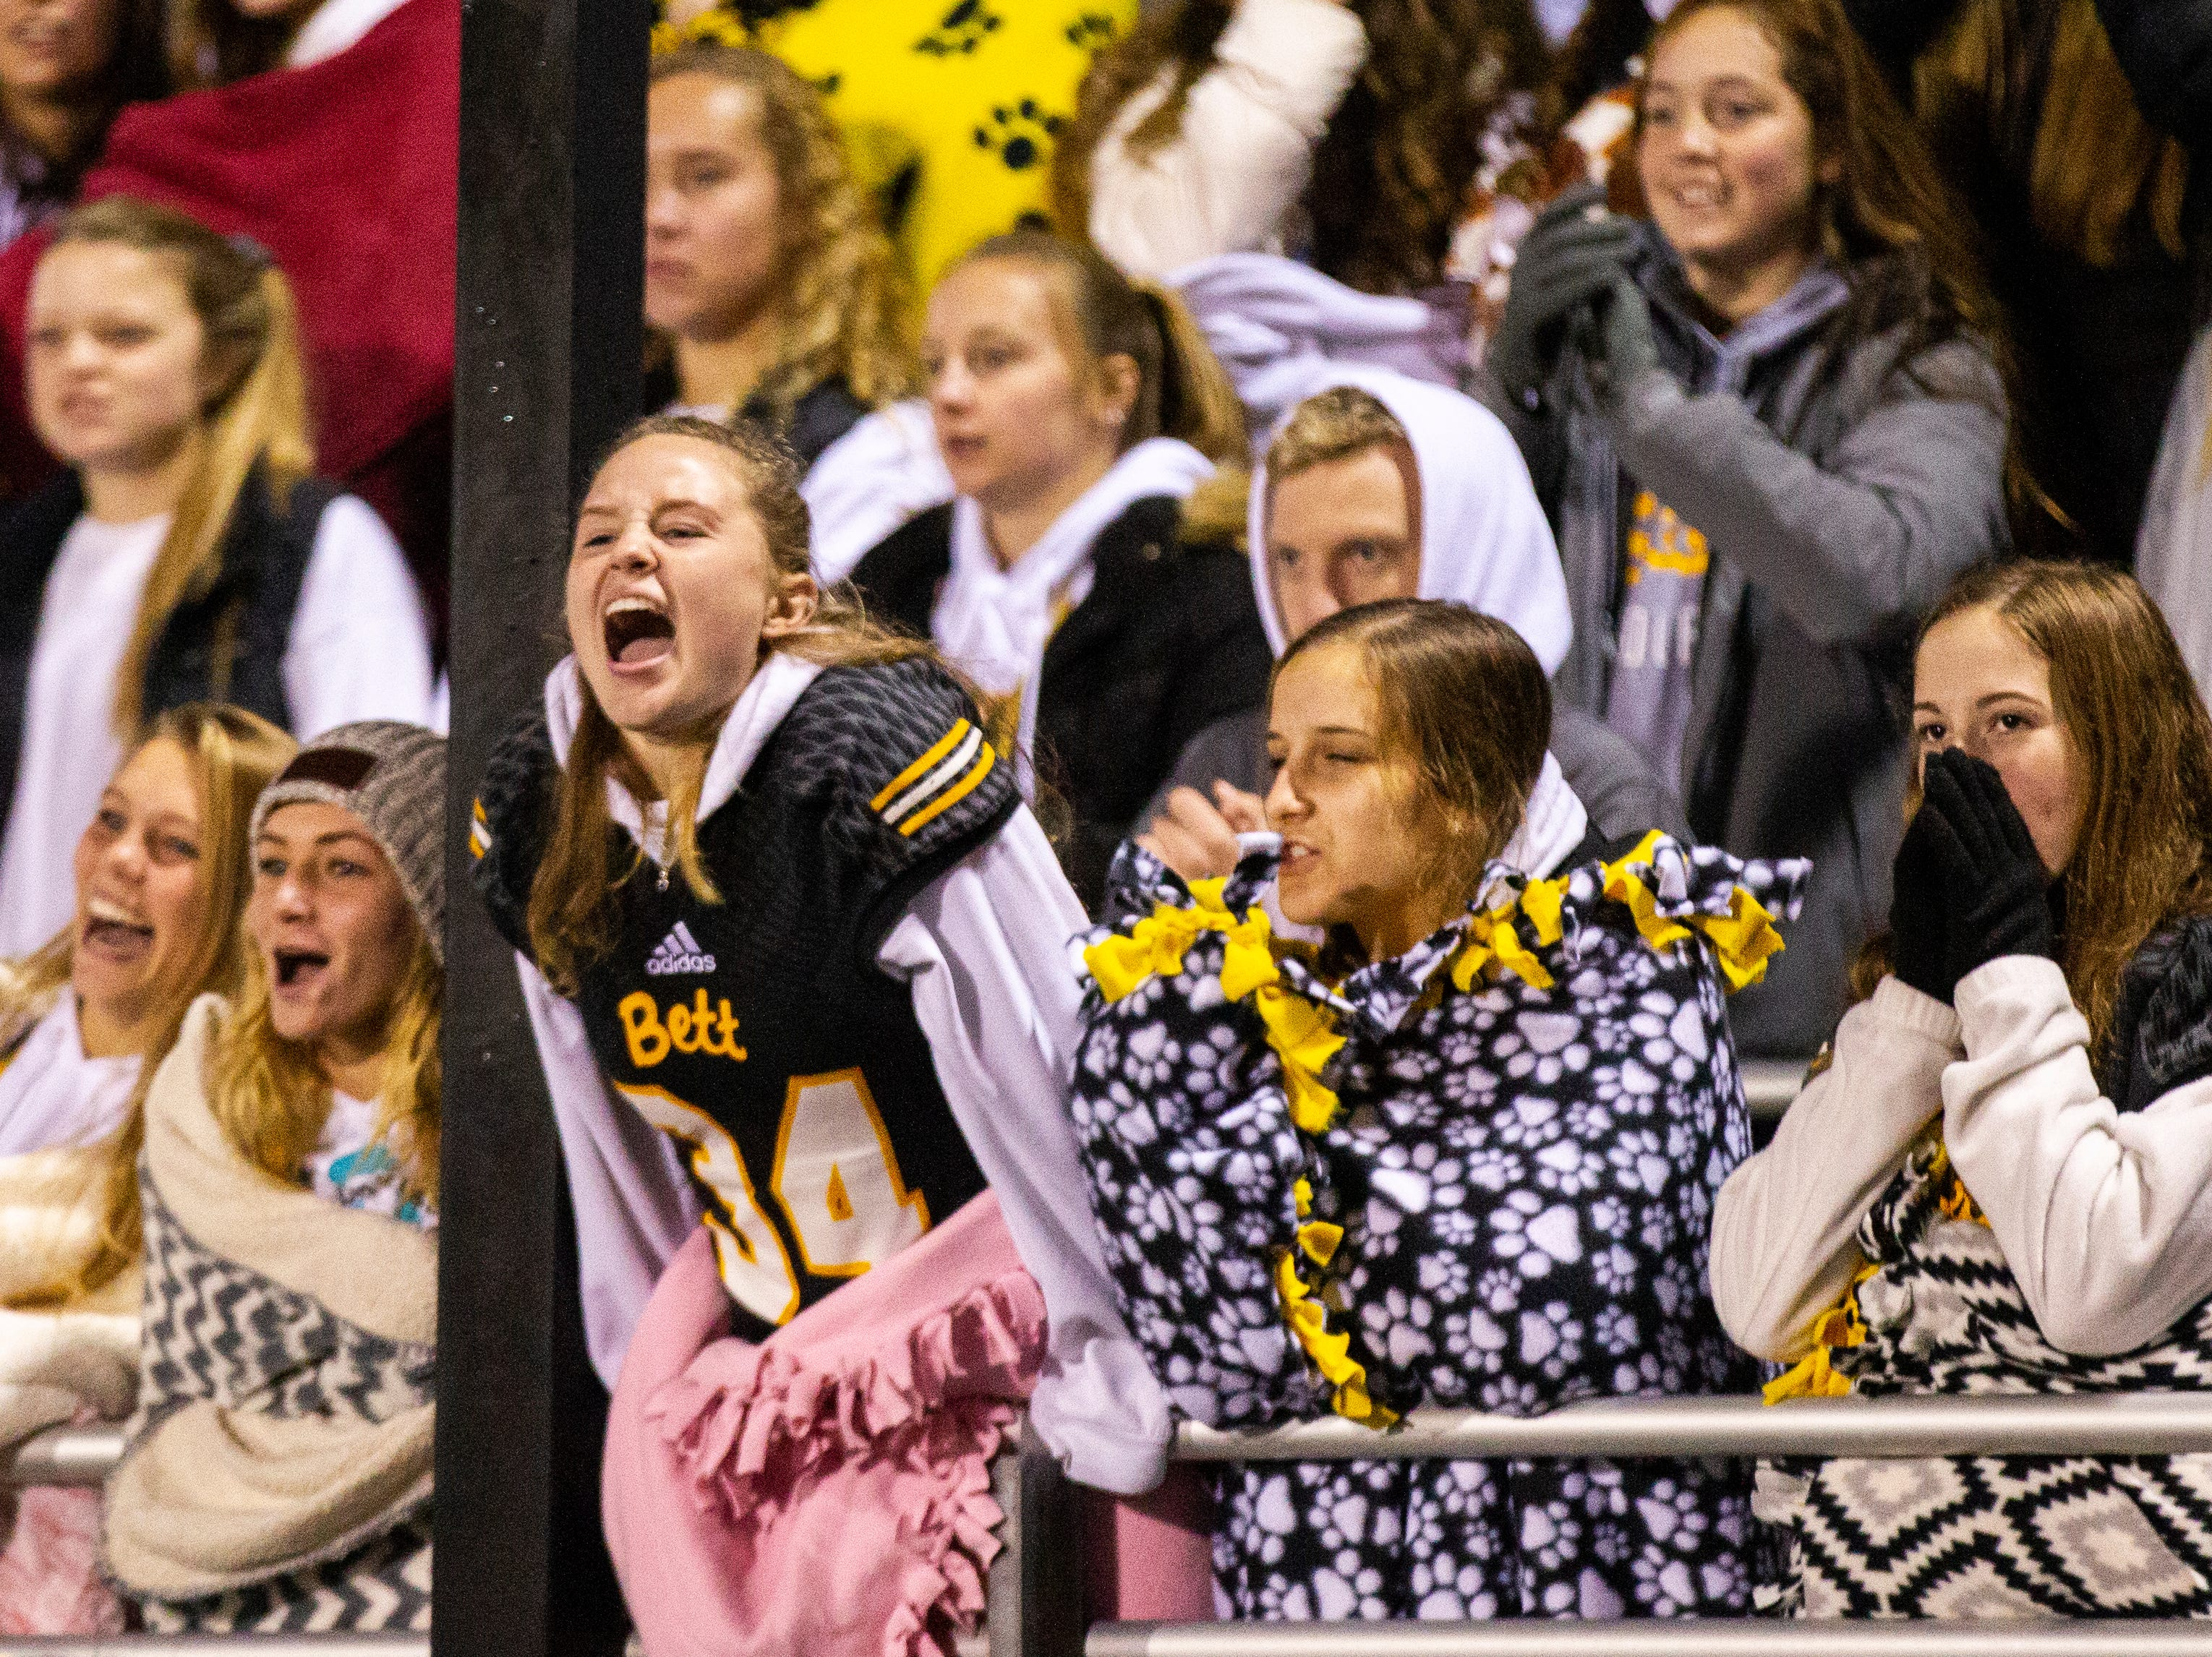 Bettendorf fans cheer during a Class 4A quarter final football game on Friday, Nov. 2, 2018, at Trojan Field in Iowa City.